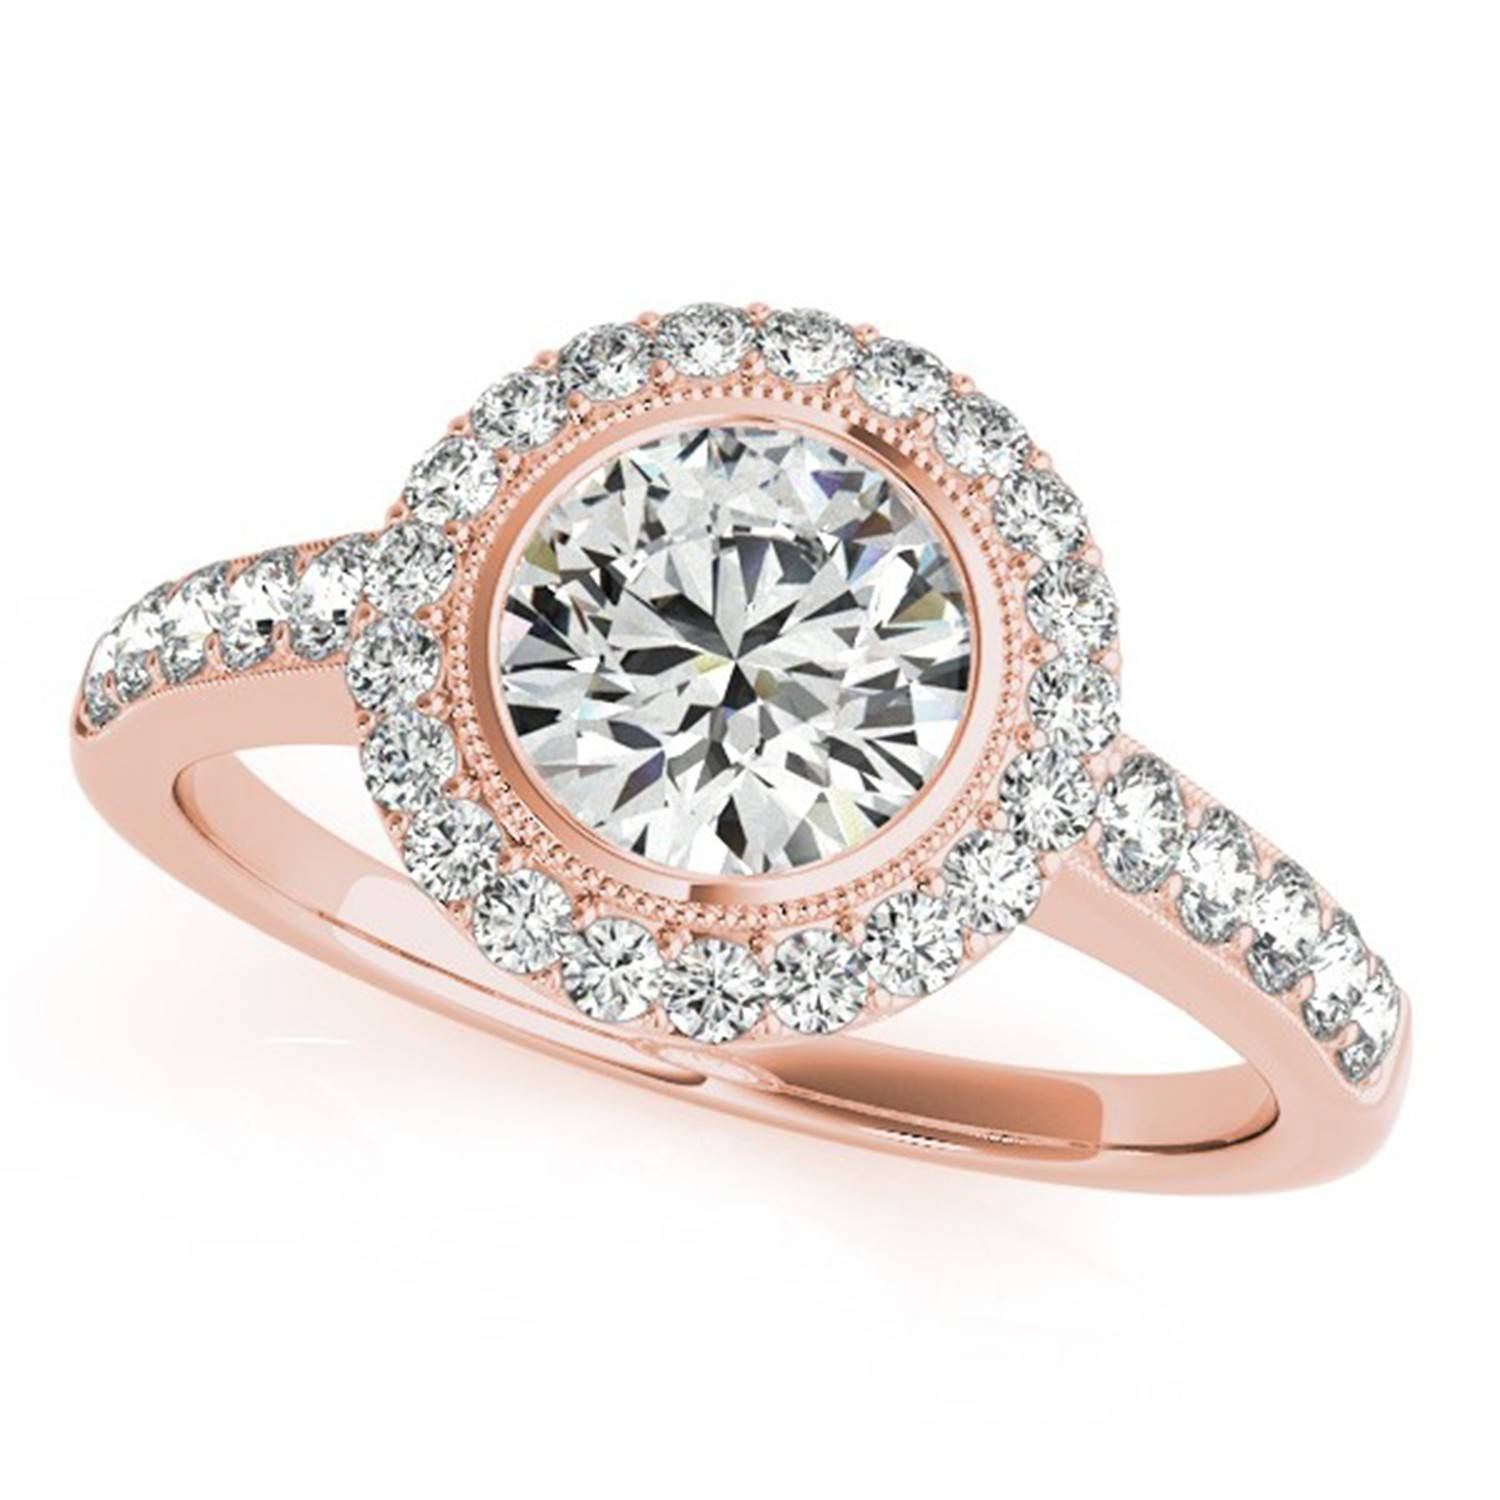 Halo Engagement Ring Settings – New Wedding Ideas Trends Intended For Vintage Halo Engagement Ring Settings (View 9 of 15)